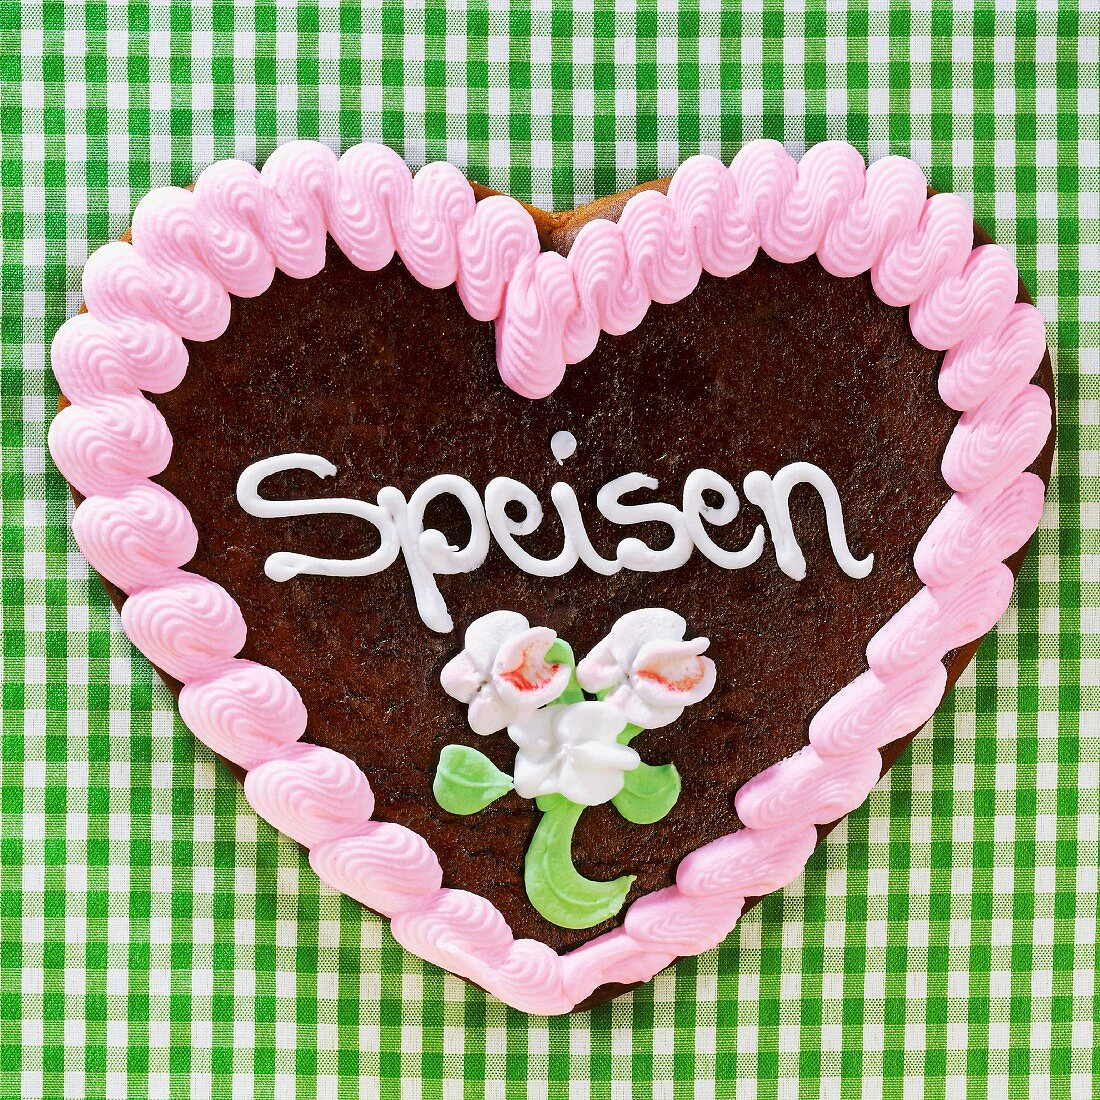 A gingerbread heart decorated with the word 'Speisen' ('Food')